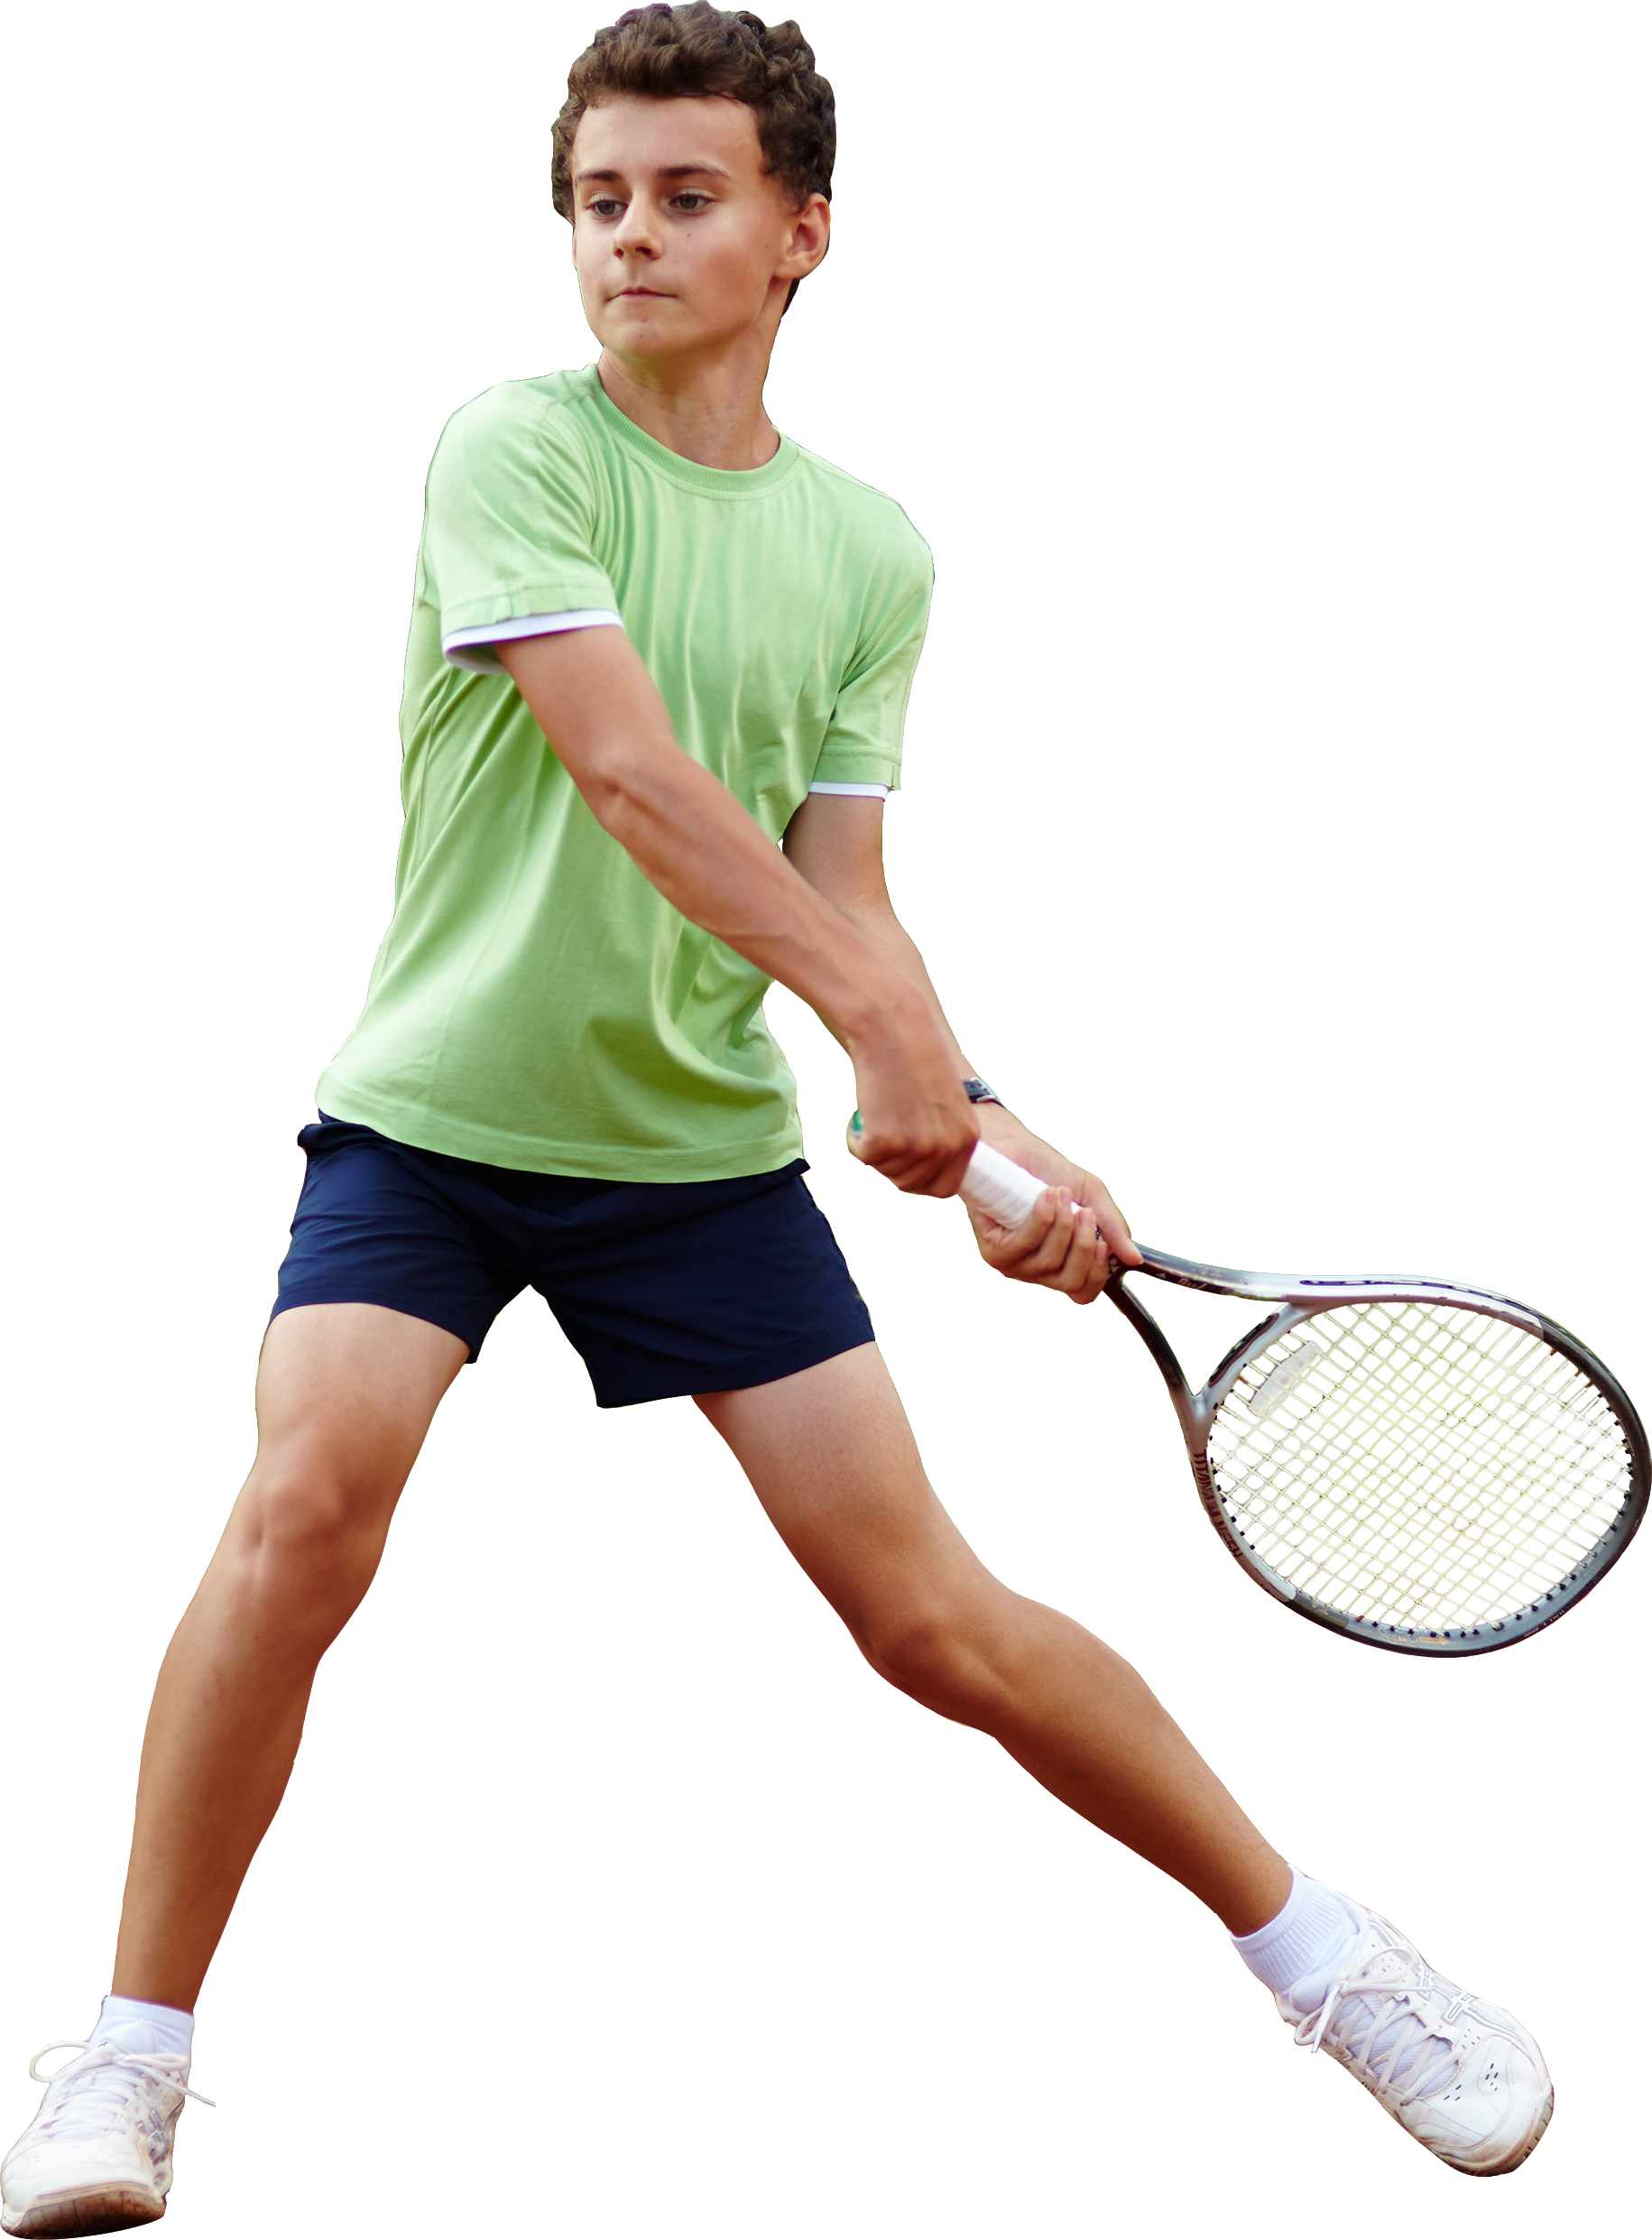 Tennis player boy PNG image.